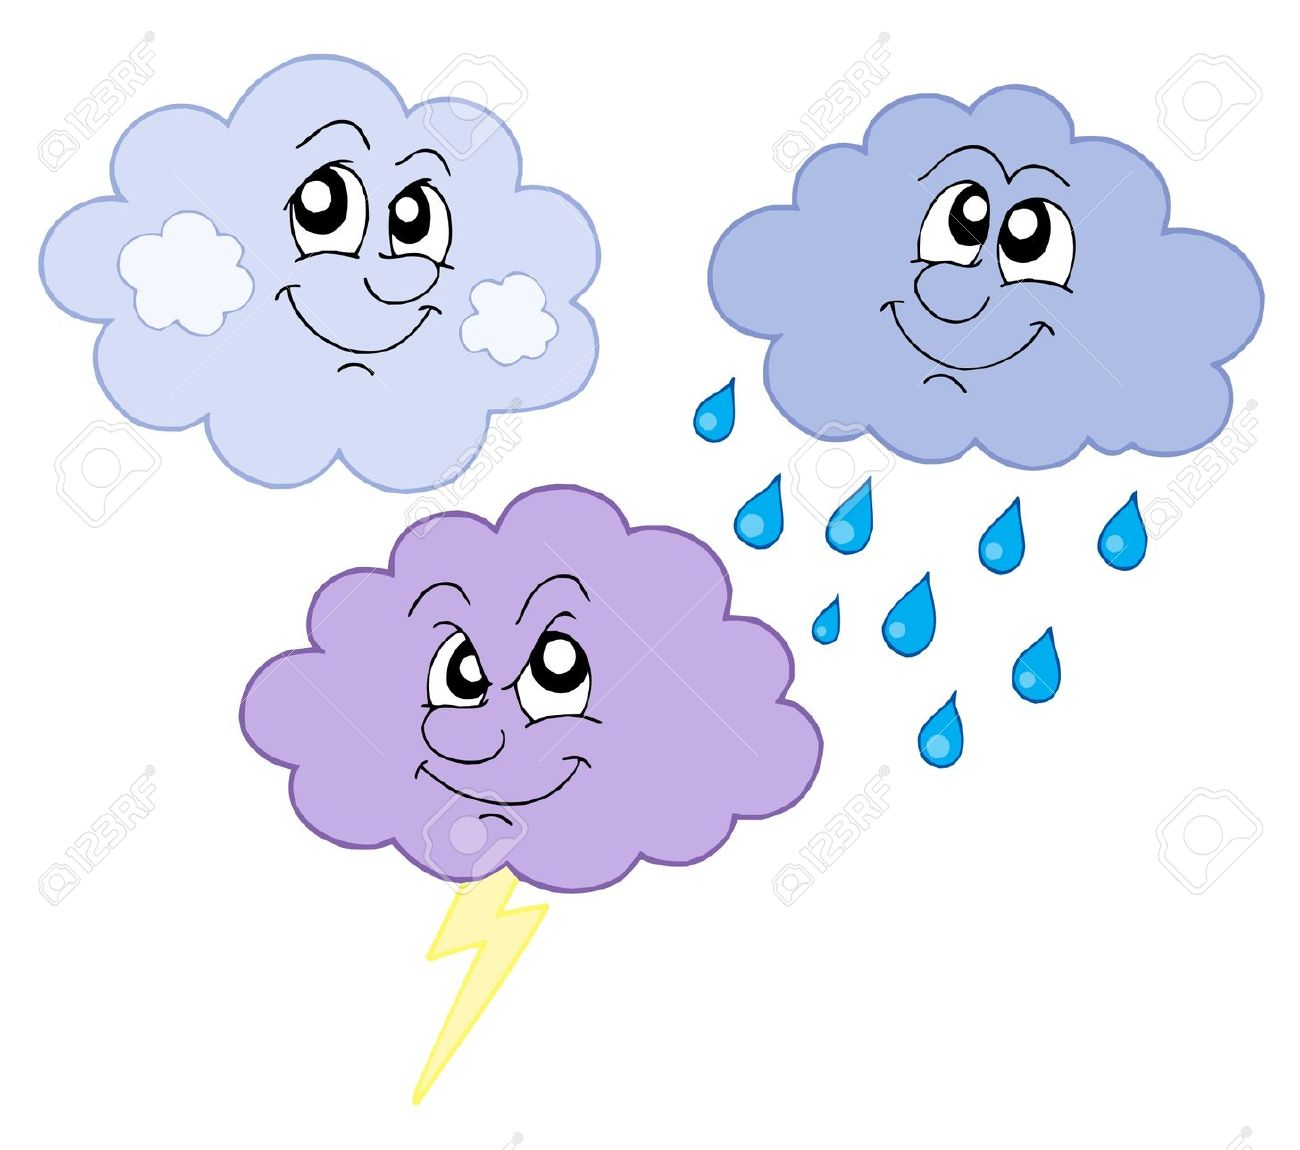 http://previews.123rf.com/images/clairev/clairev0807/clairev080700153/3325142-Various-cute-clouds-vector-illustration--Stock-Vector-clouds-cloud-drawing.jpg